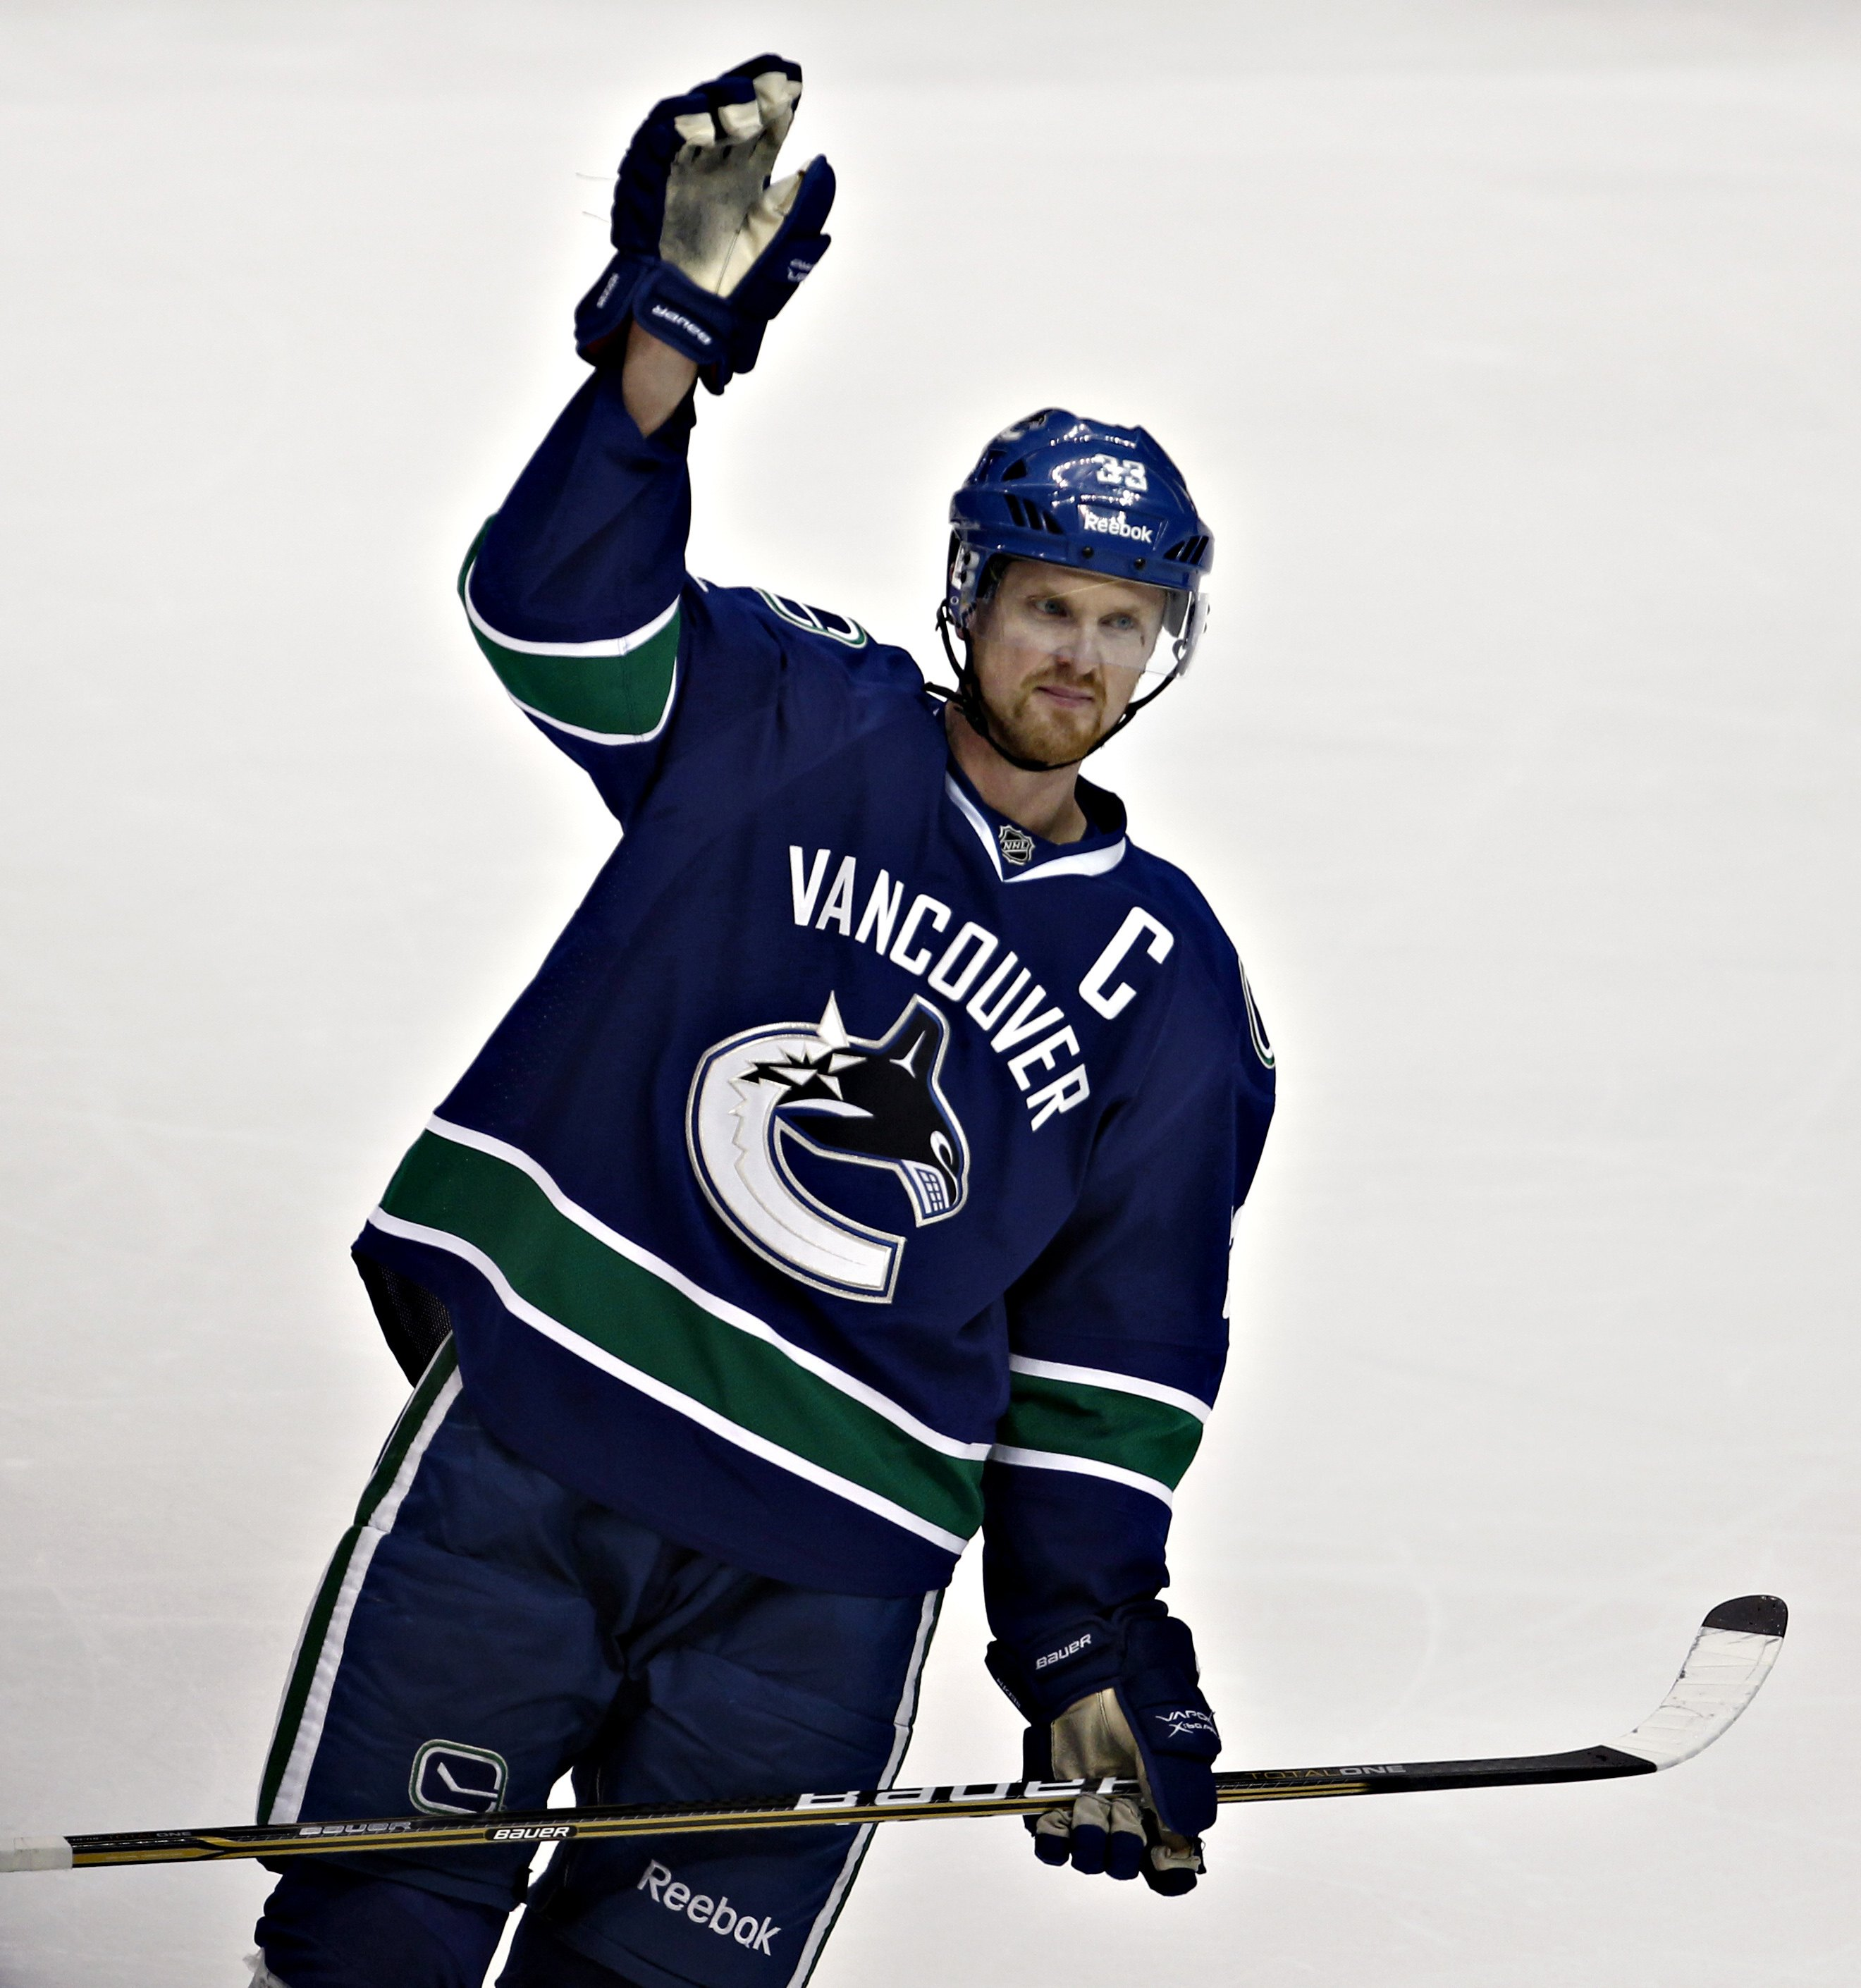 Henrik Sedin passed Markus Naslund for Vancouver's all-time franchise scoring lead. (Reuters)